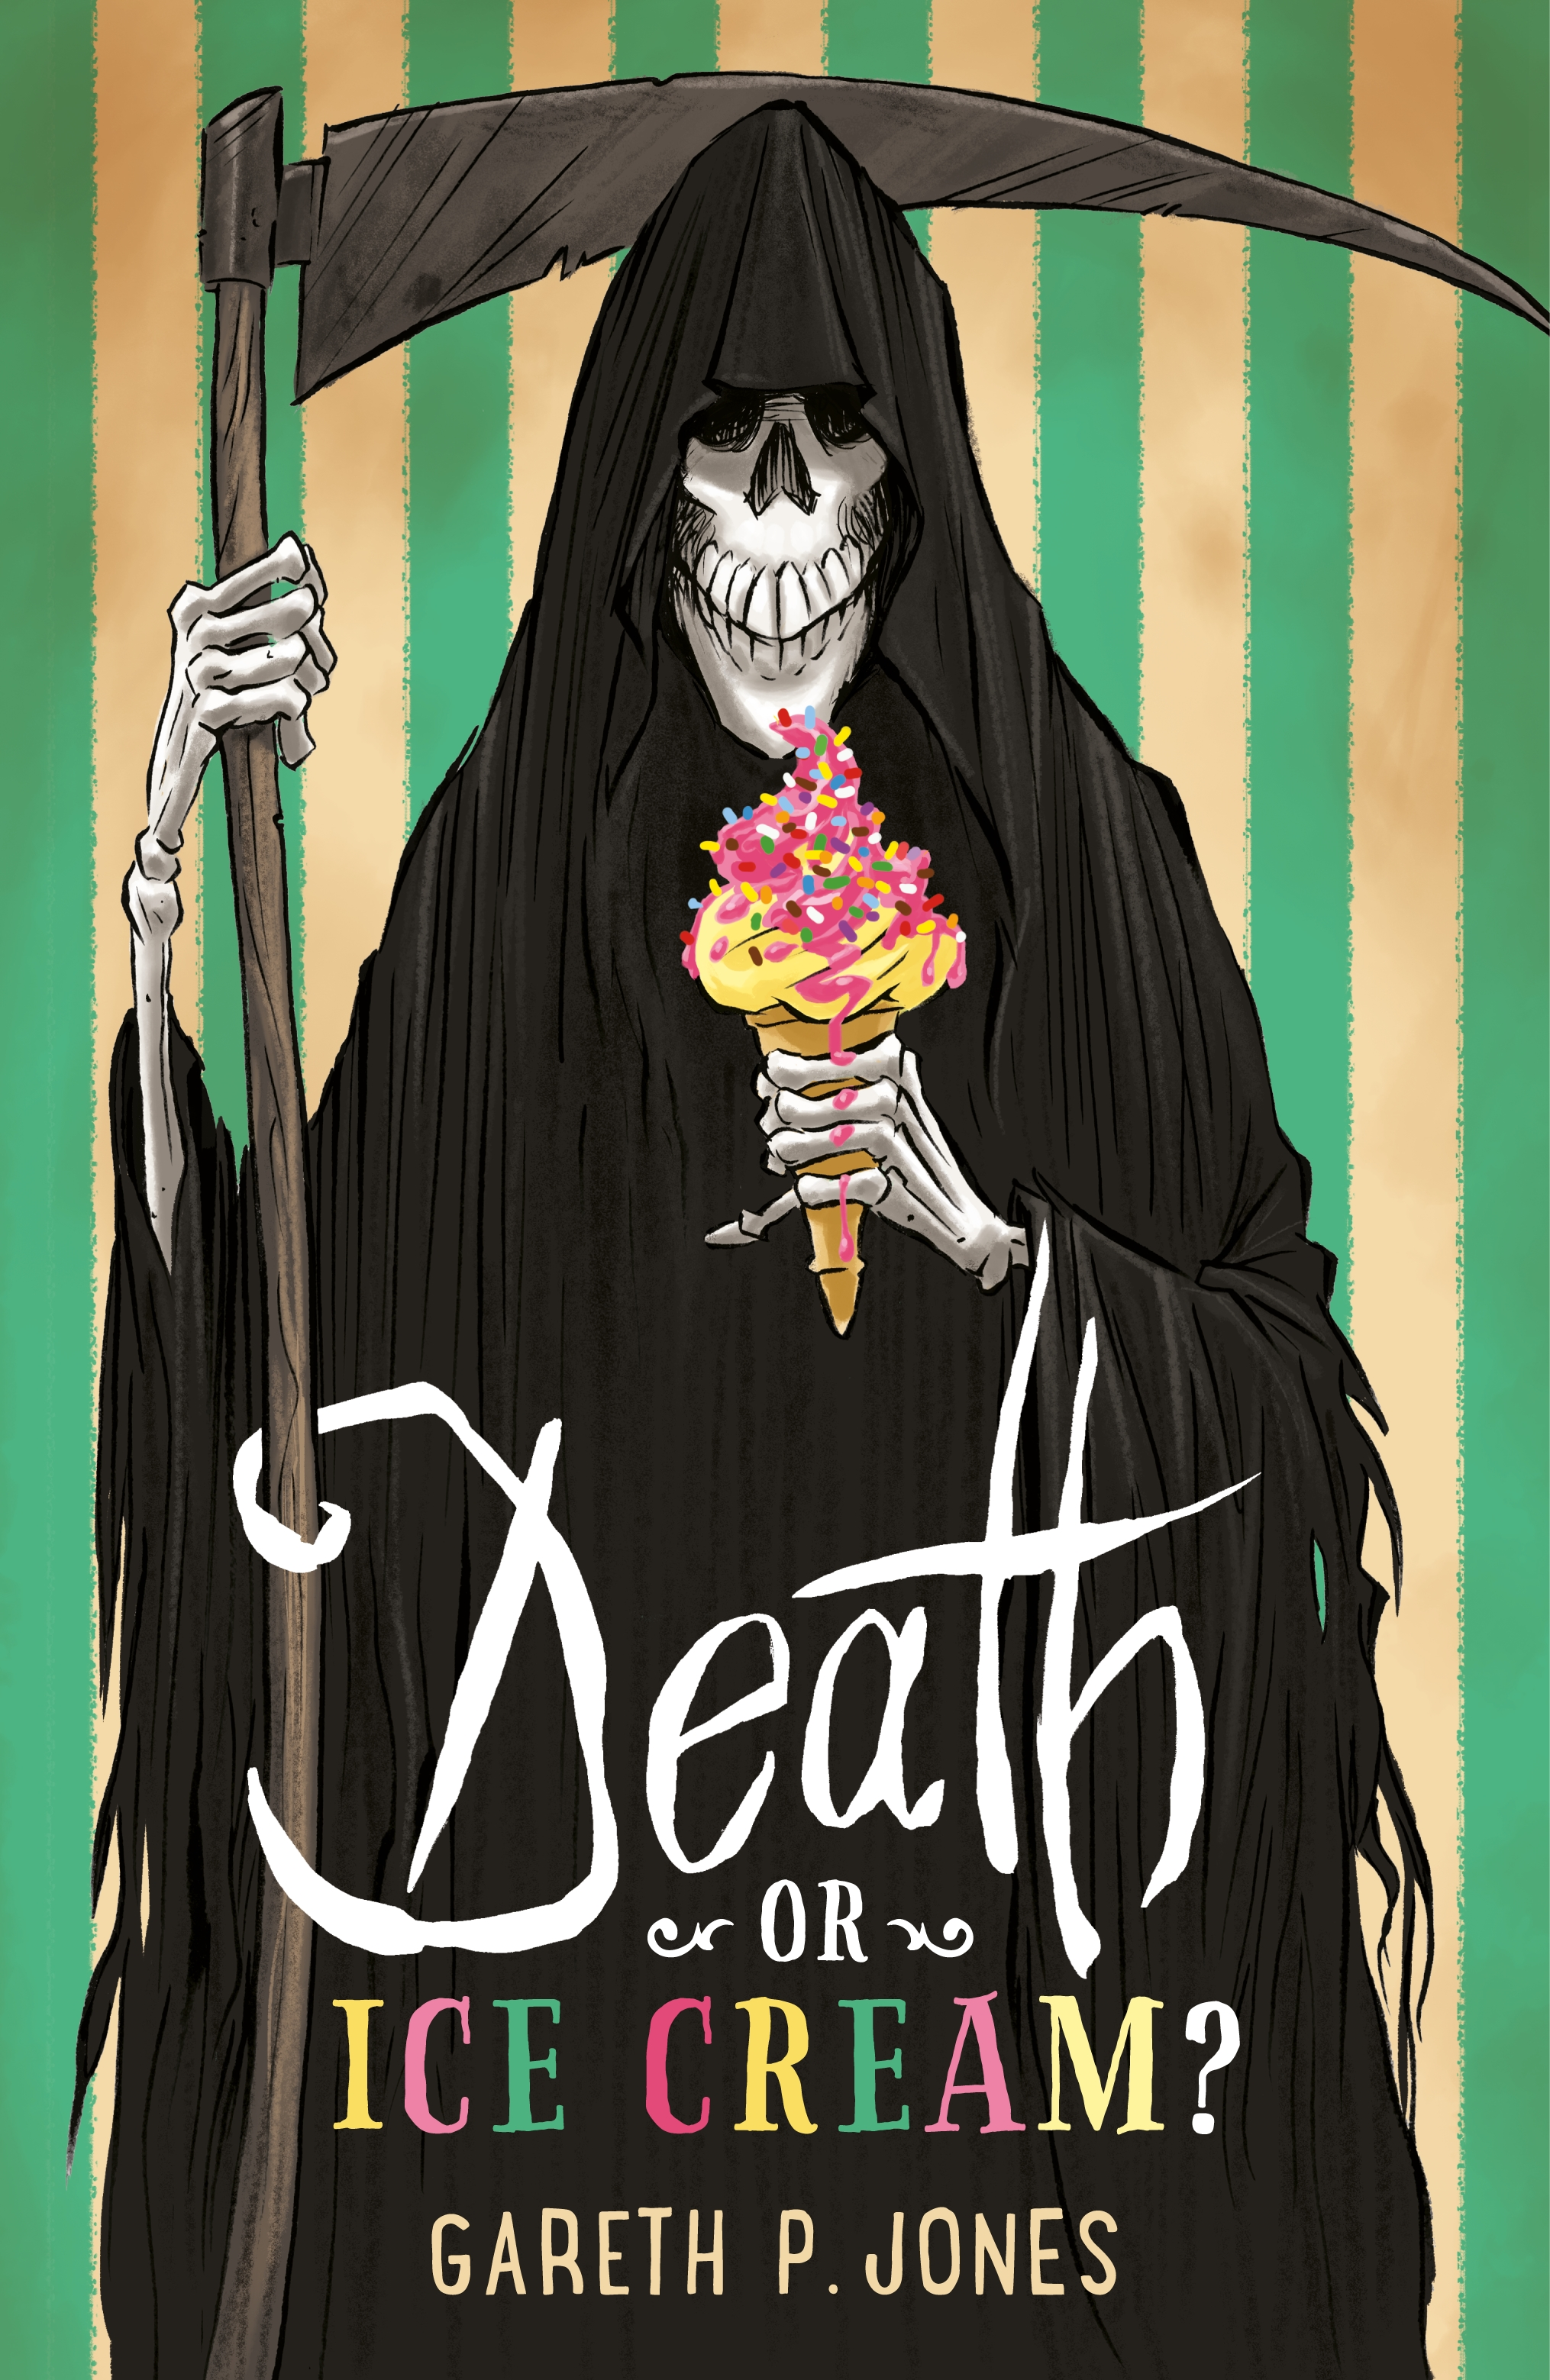 Death or Ice Cream? by Gareth P. Jones